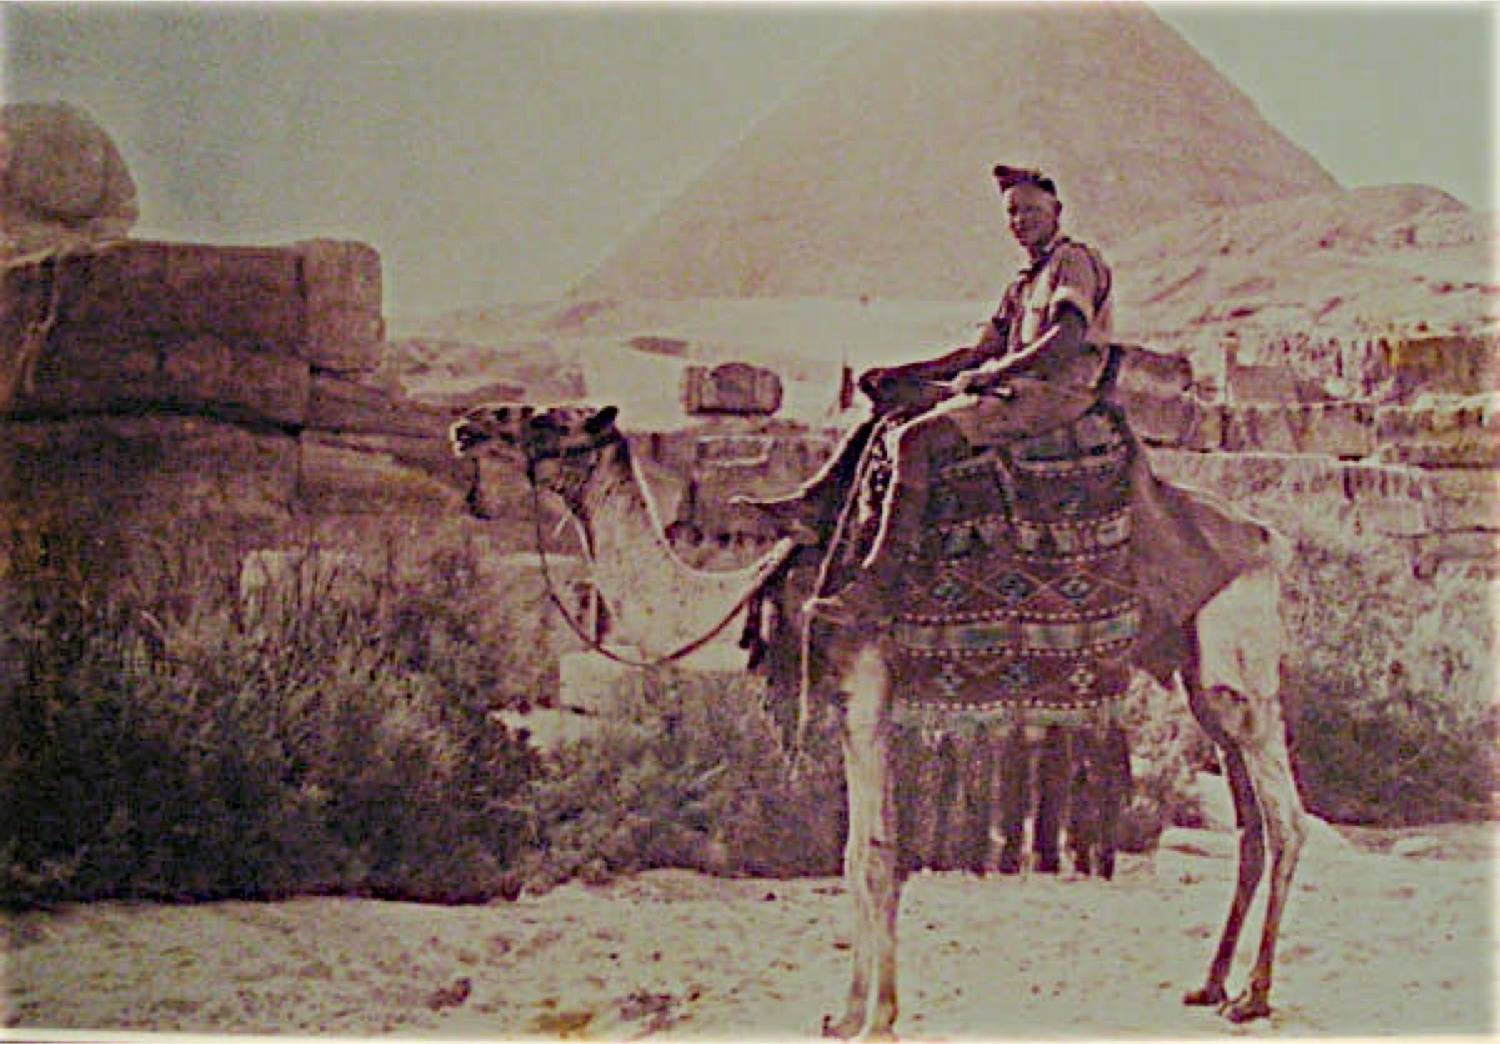 Sgt. Robert Otterson as tourist, Cairo 1942.